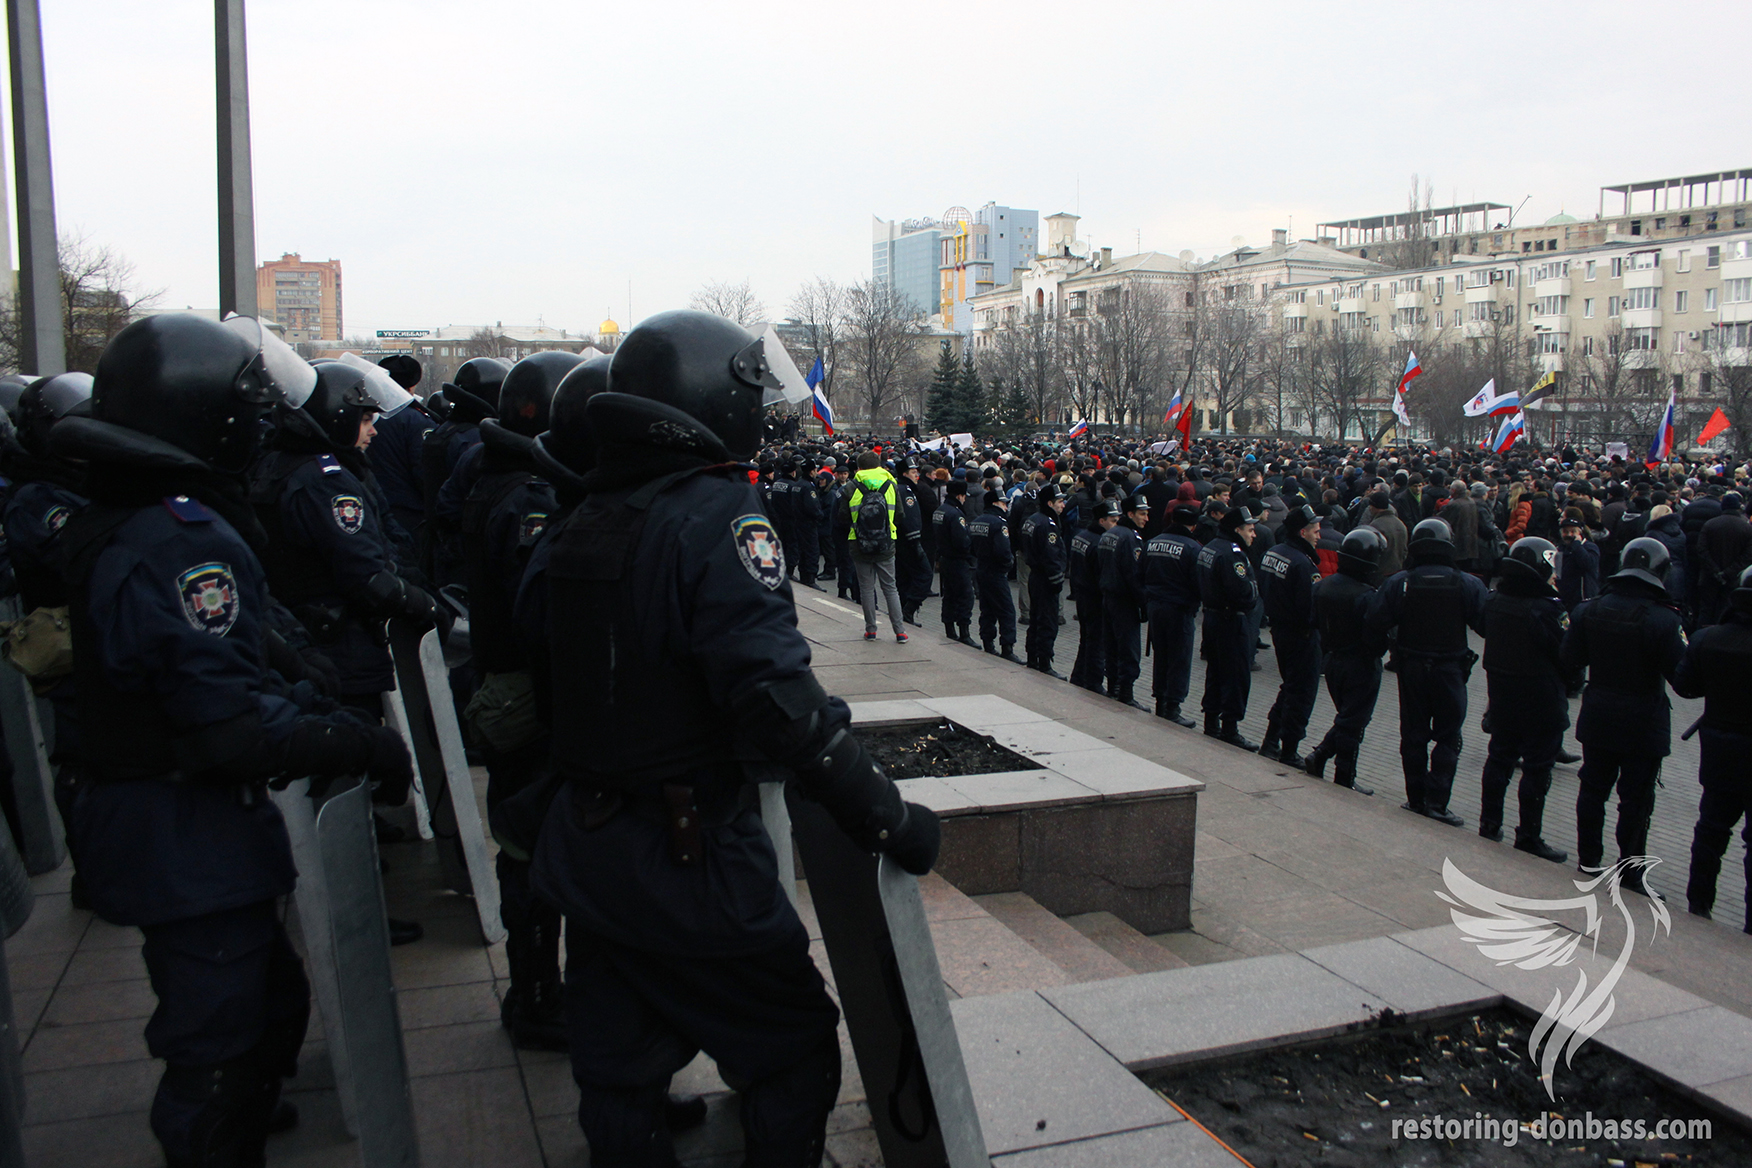 Internal troops in front of protesters near the Donetsk Regional State Administration, March 5, 2014